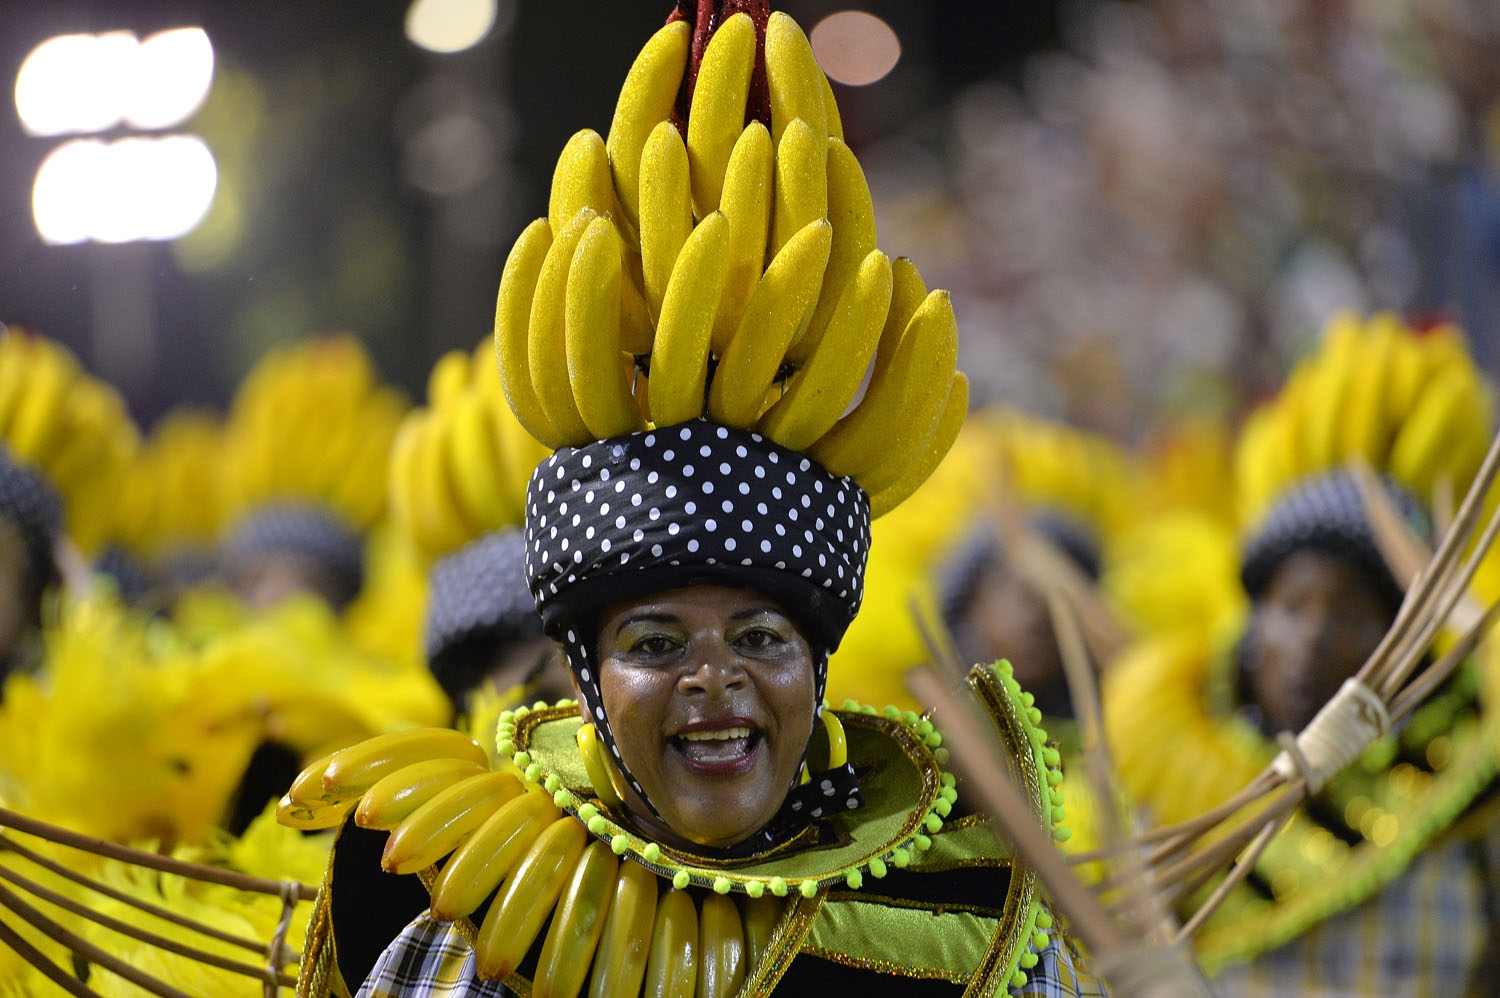 Revelers of the Grande Rio samba school perform during the first night of carnival parade at the Sambadrome in Rio de Janeiro on March 2, 2014